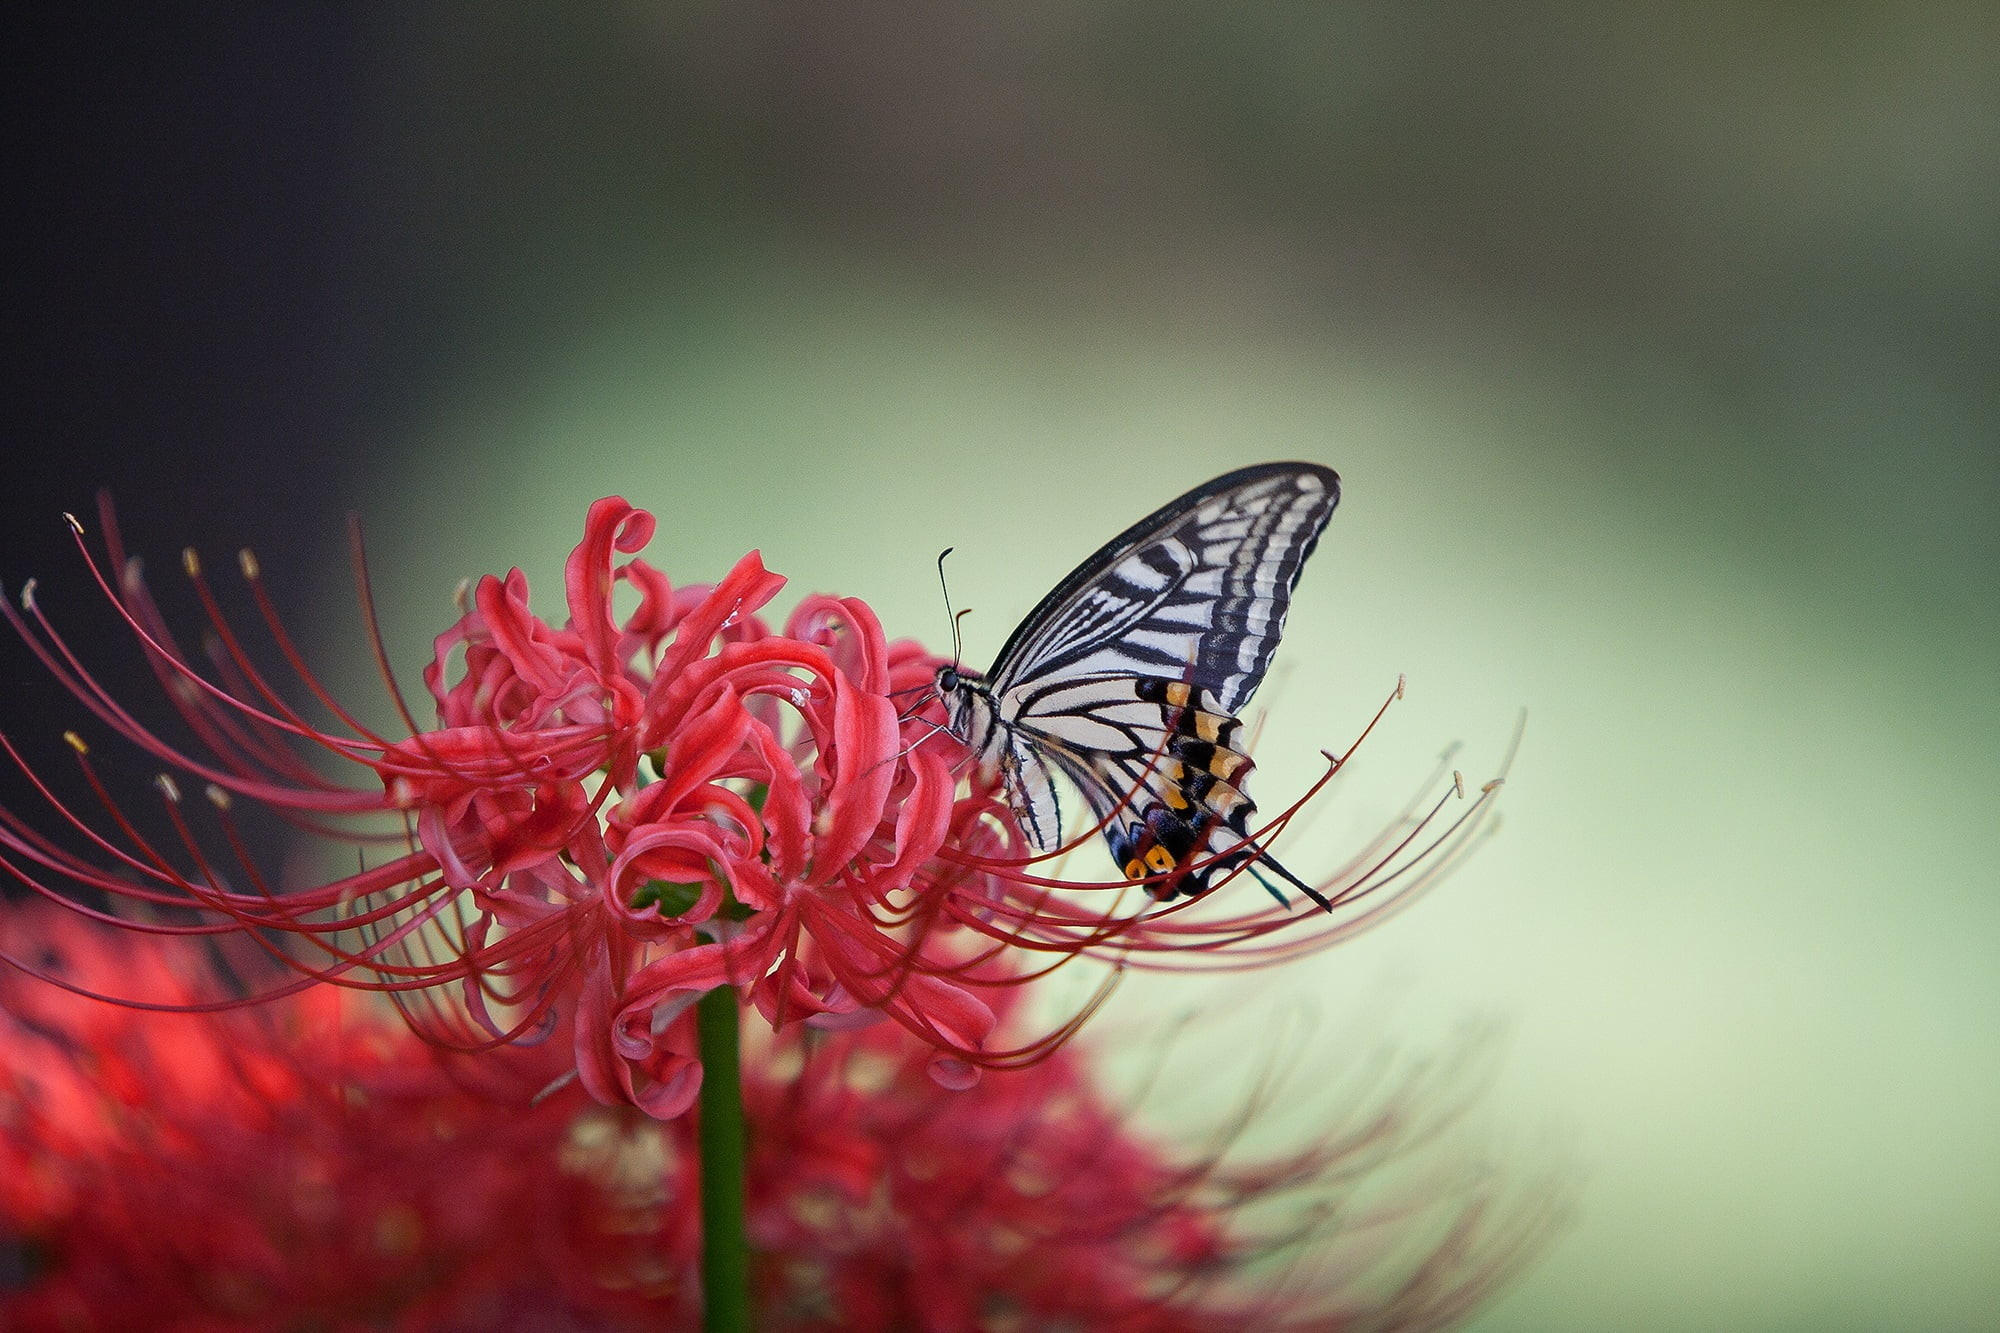 Res: 2000x1333, Zebra Swallowtail perched on red petaled flower HD wallpaper